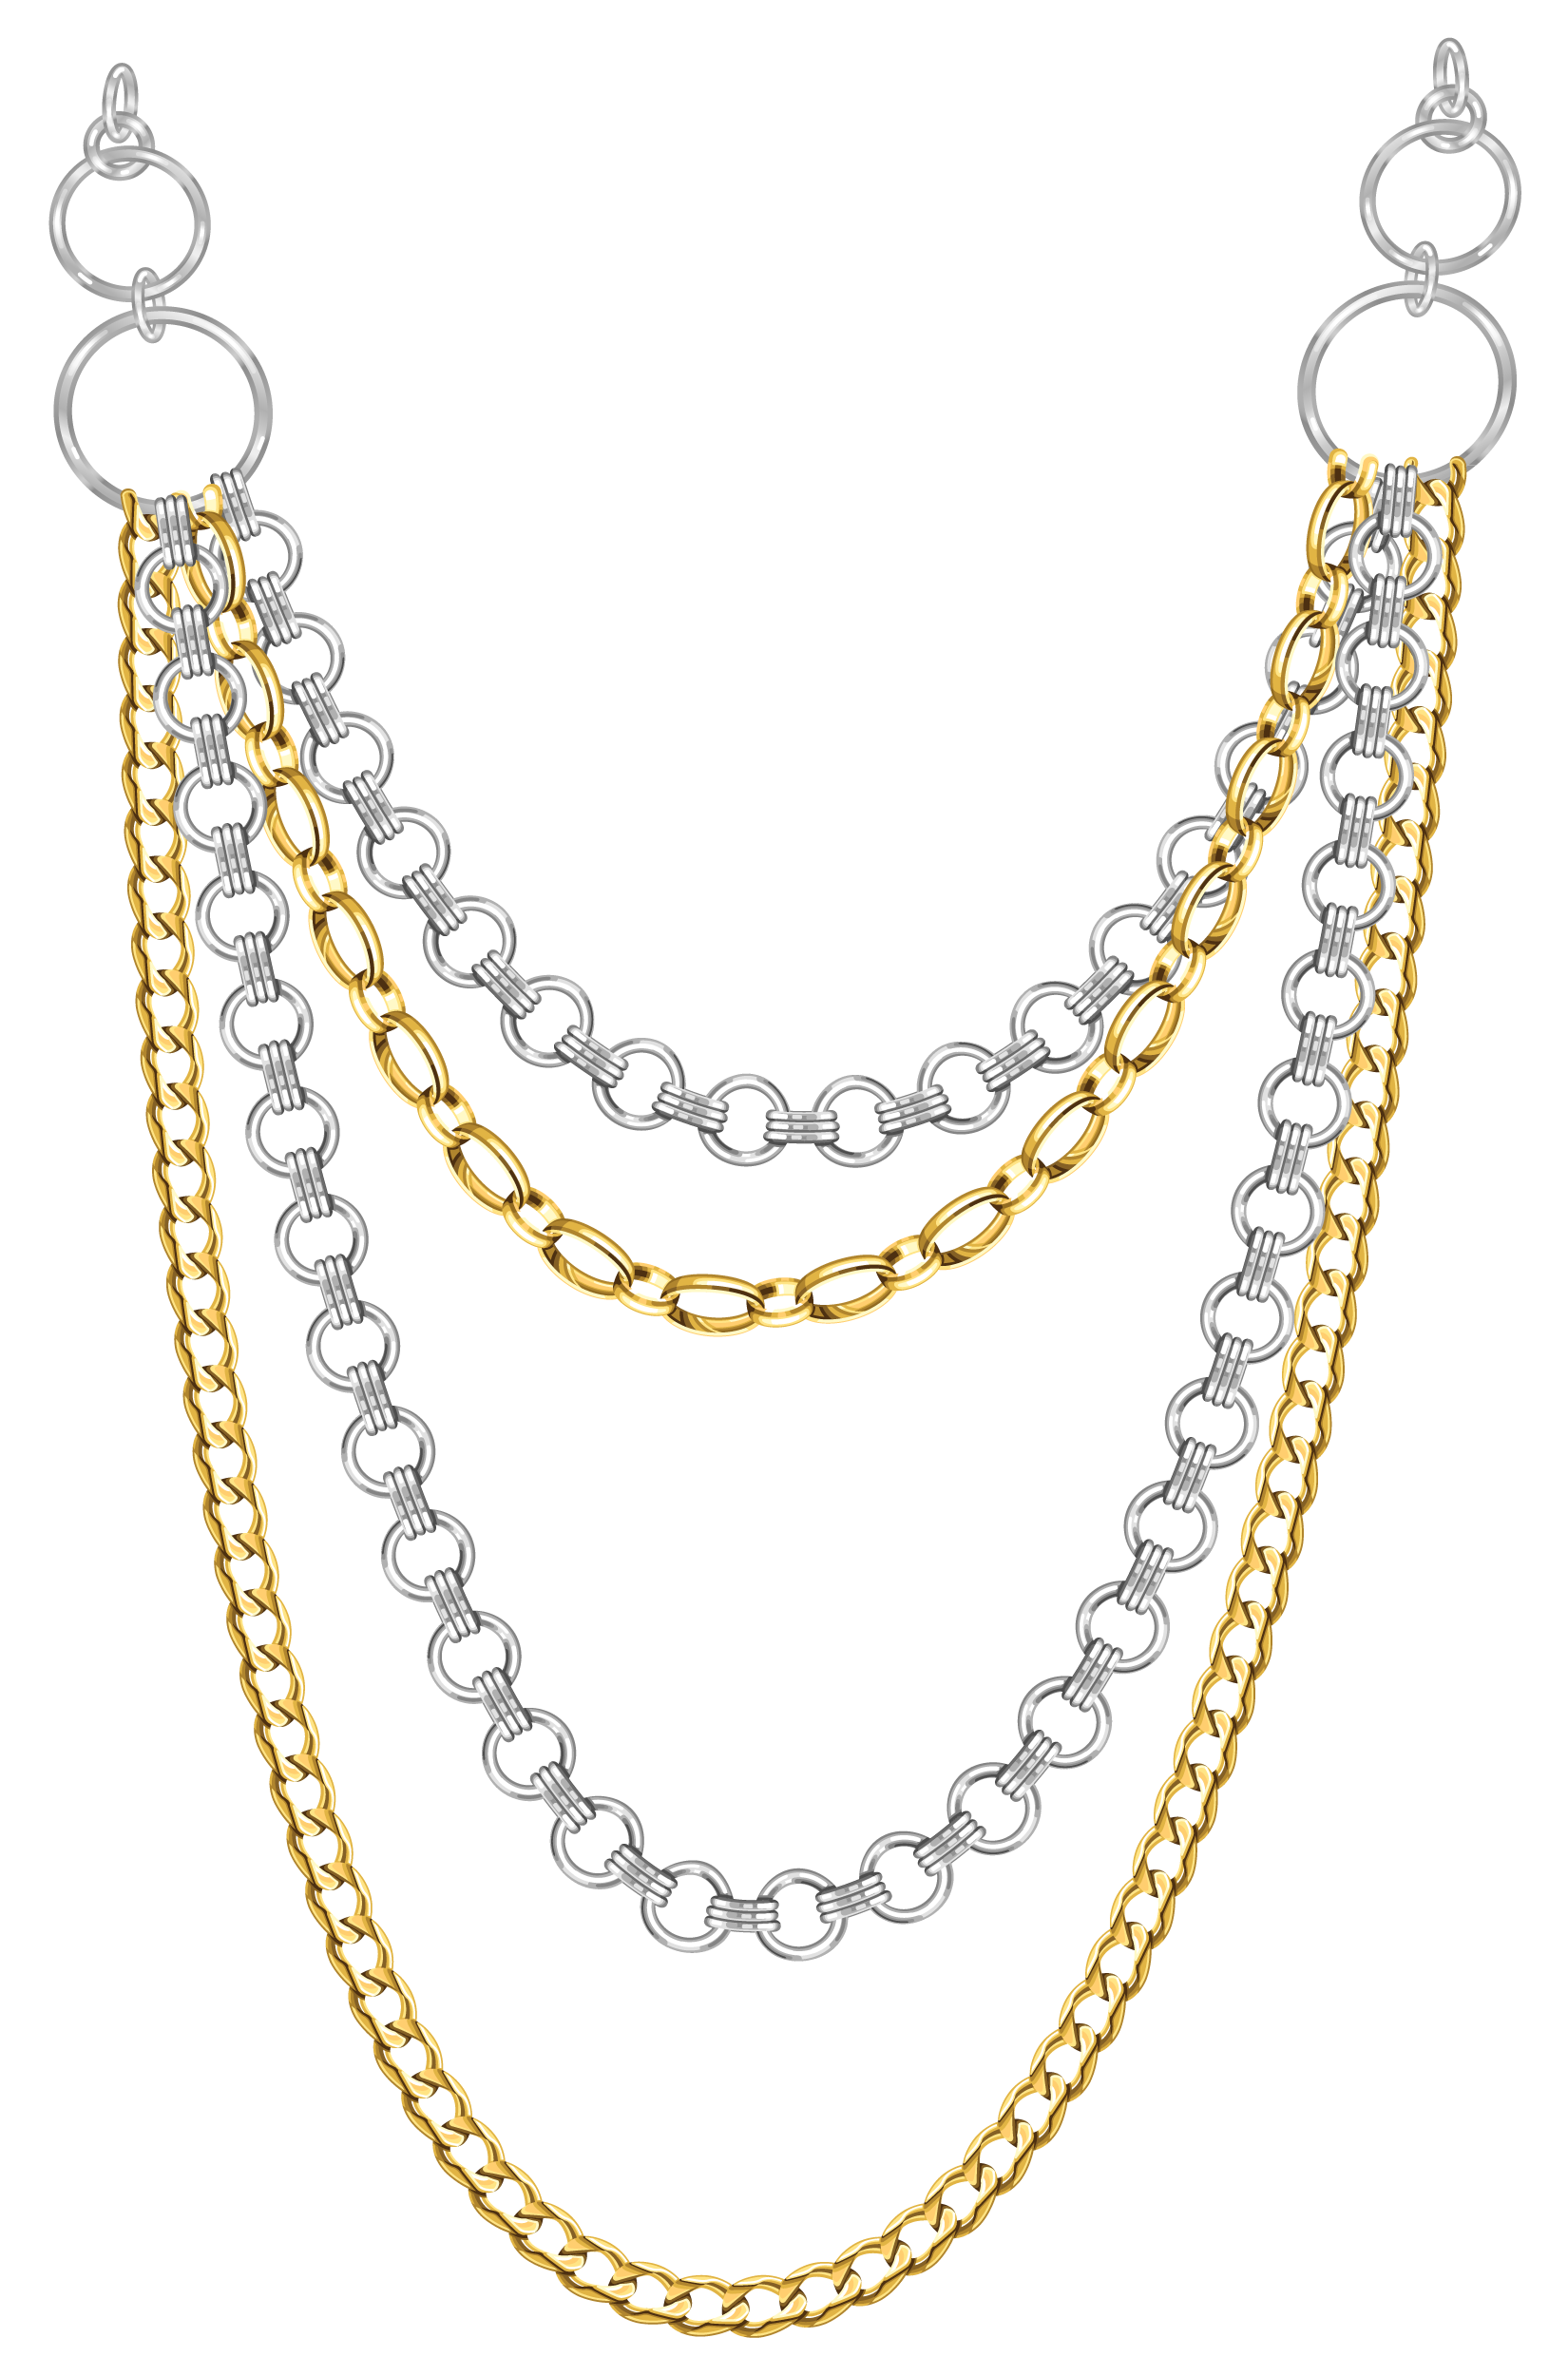 clipart freeuse necklace vector #87402975